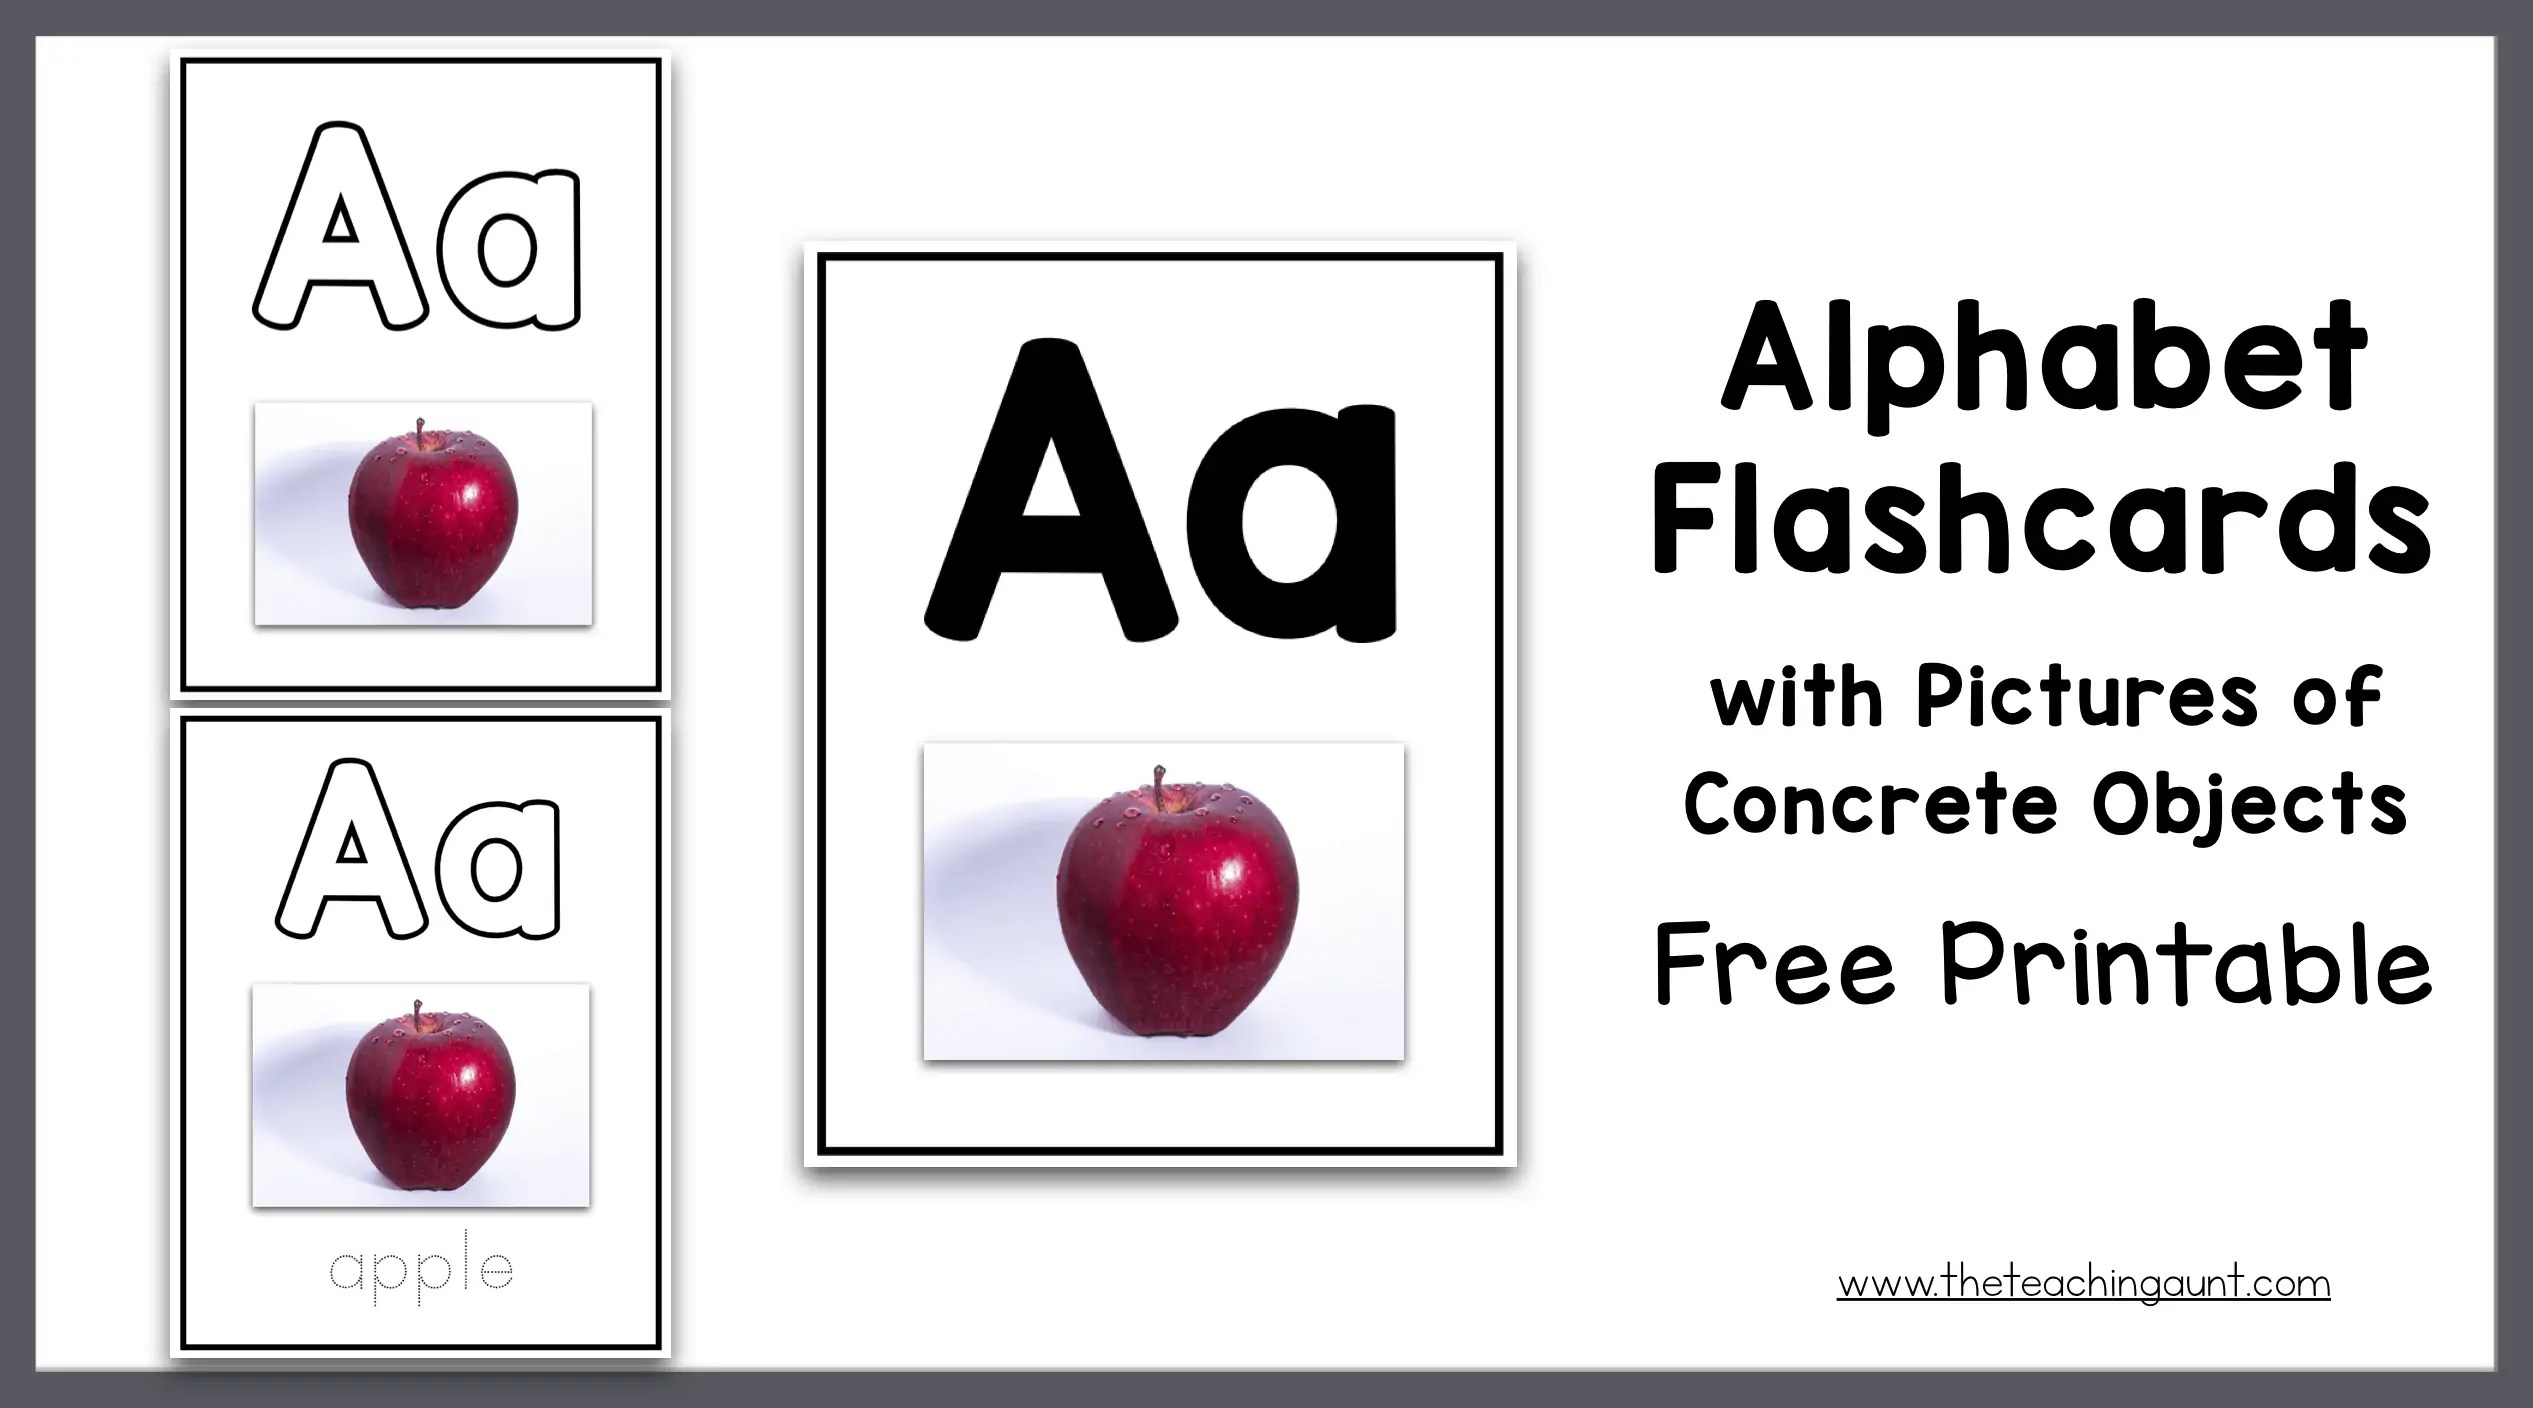 photograph regarding Abc Flash Cards Printable referred to as Alphabet Flashcards with Photos of Concrete Items - The